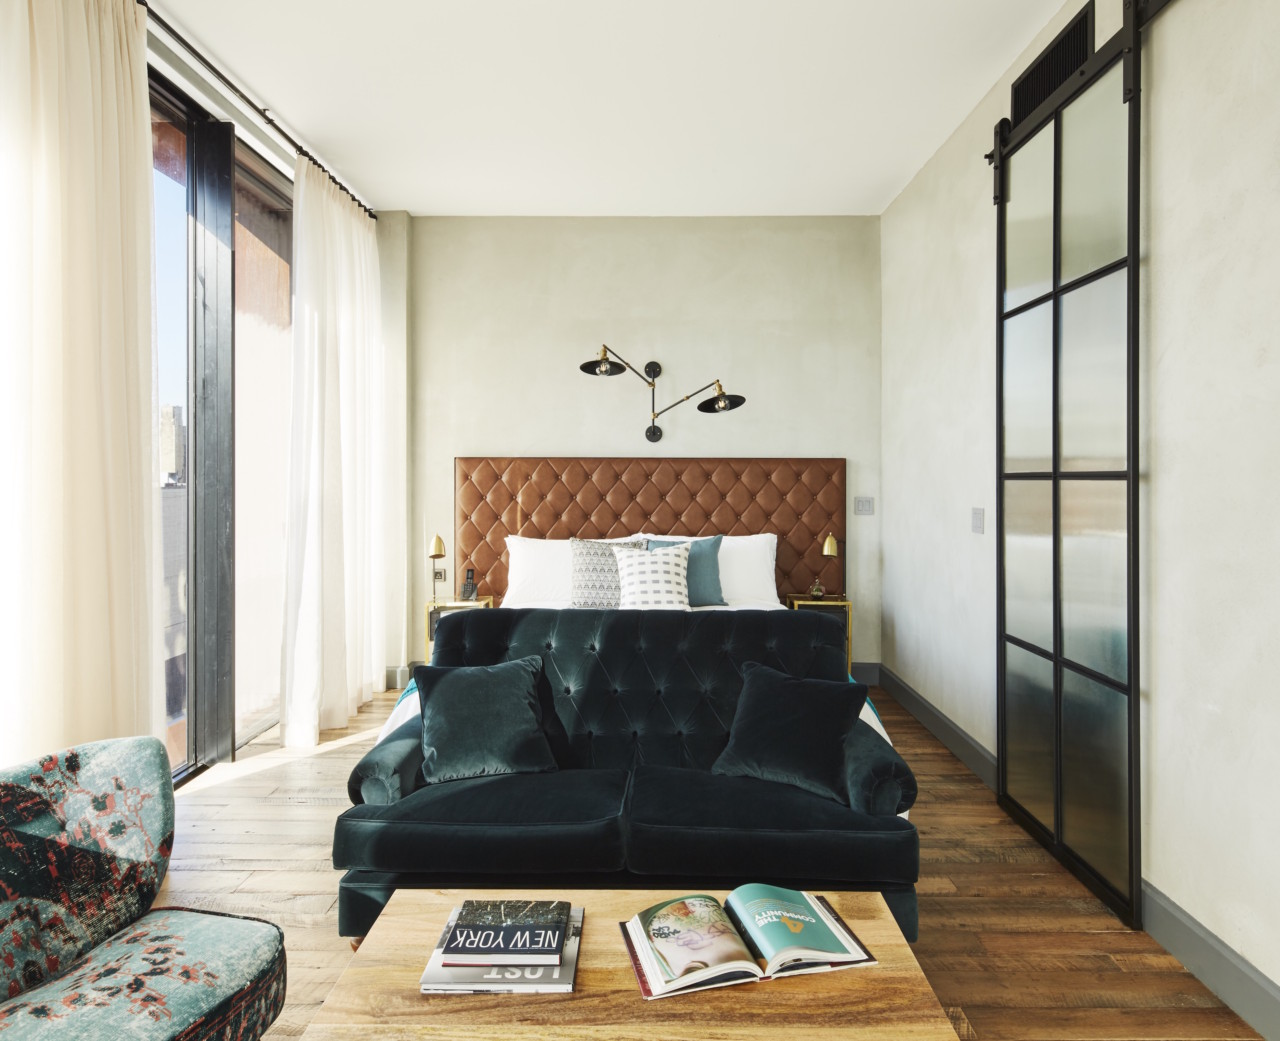 History Meets Modernity at The Williamsburg Hotel in New